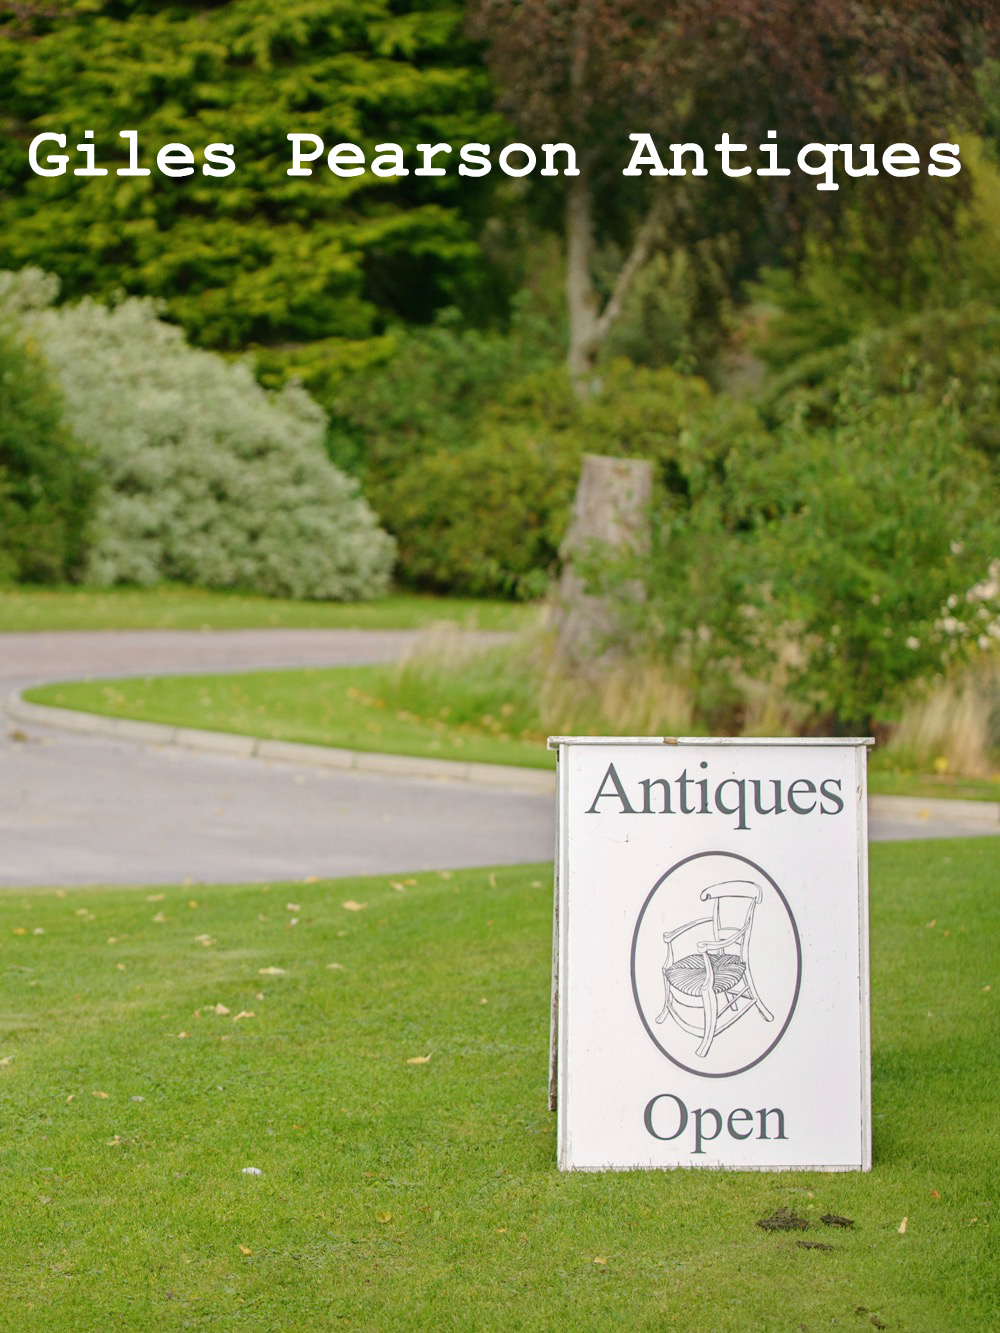 giles pearson antiques and restoration